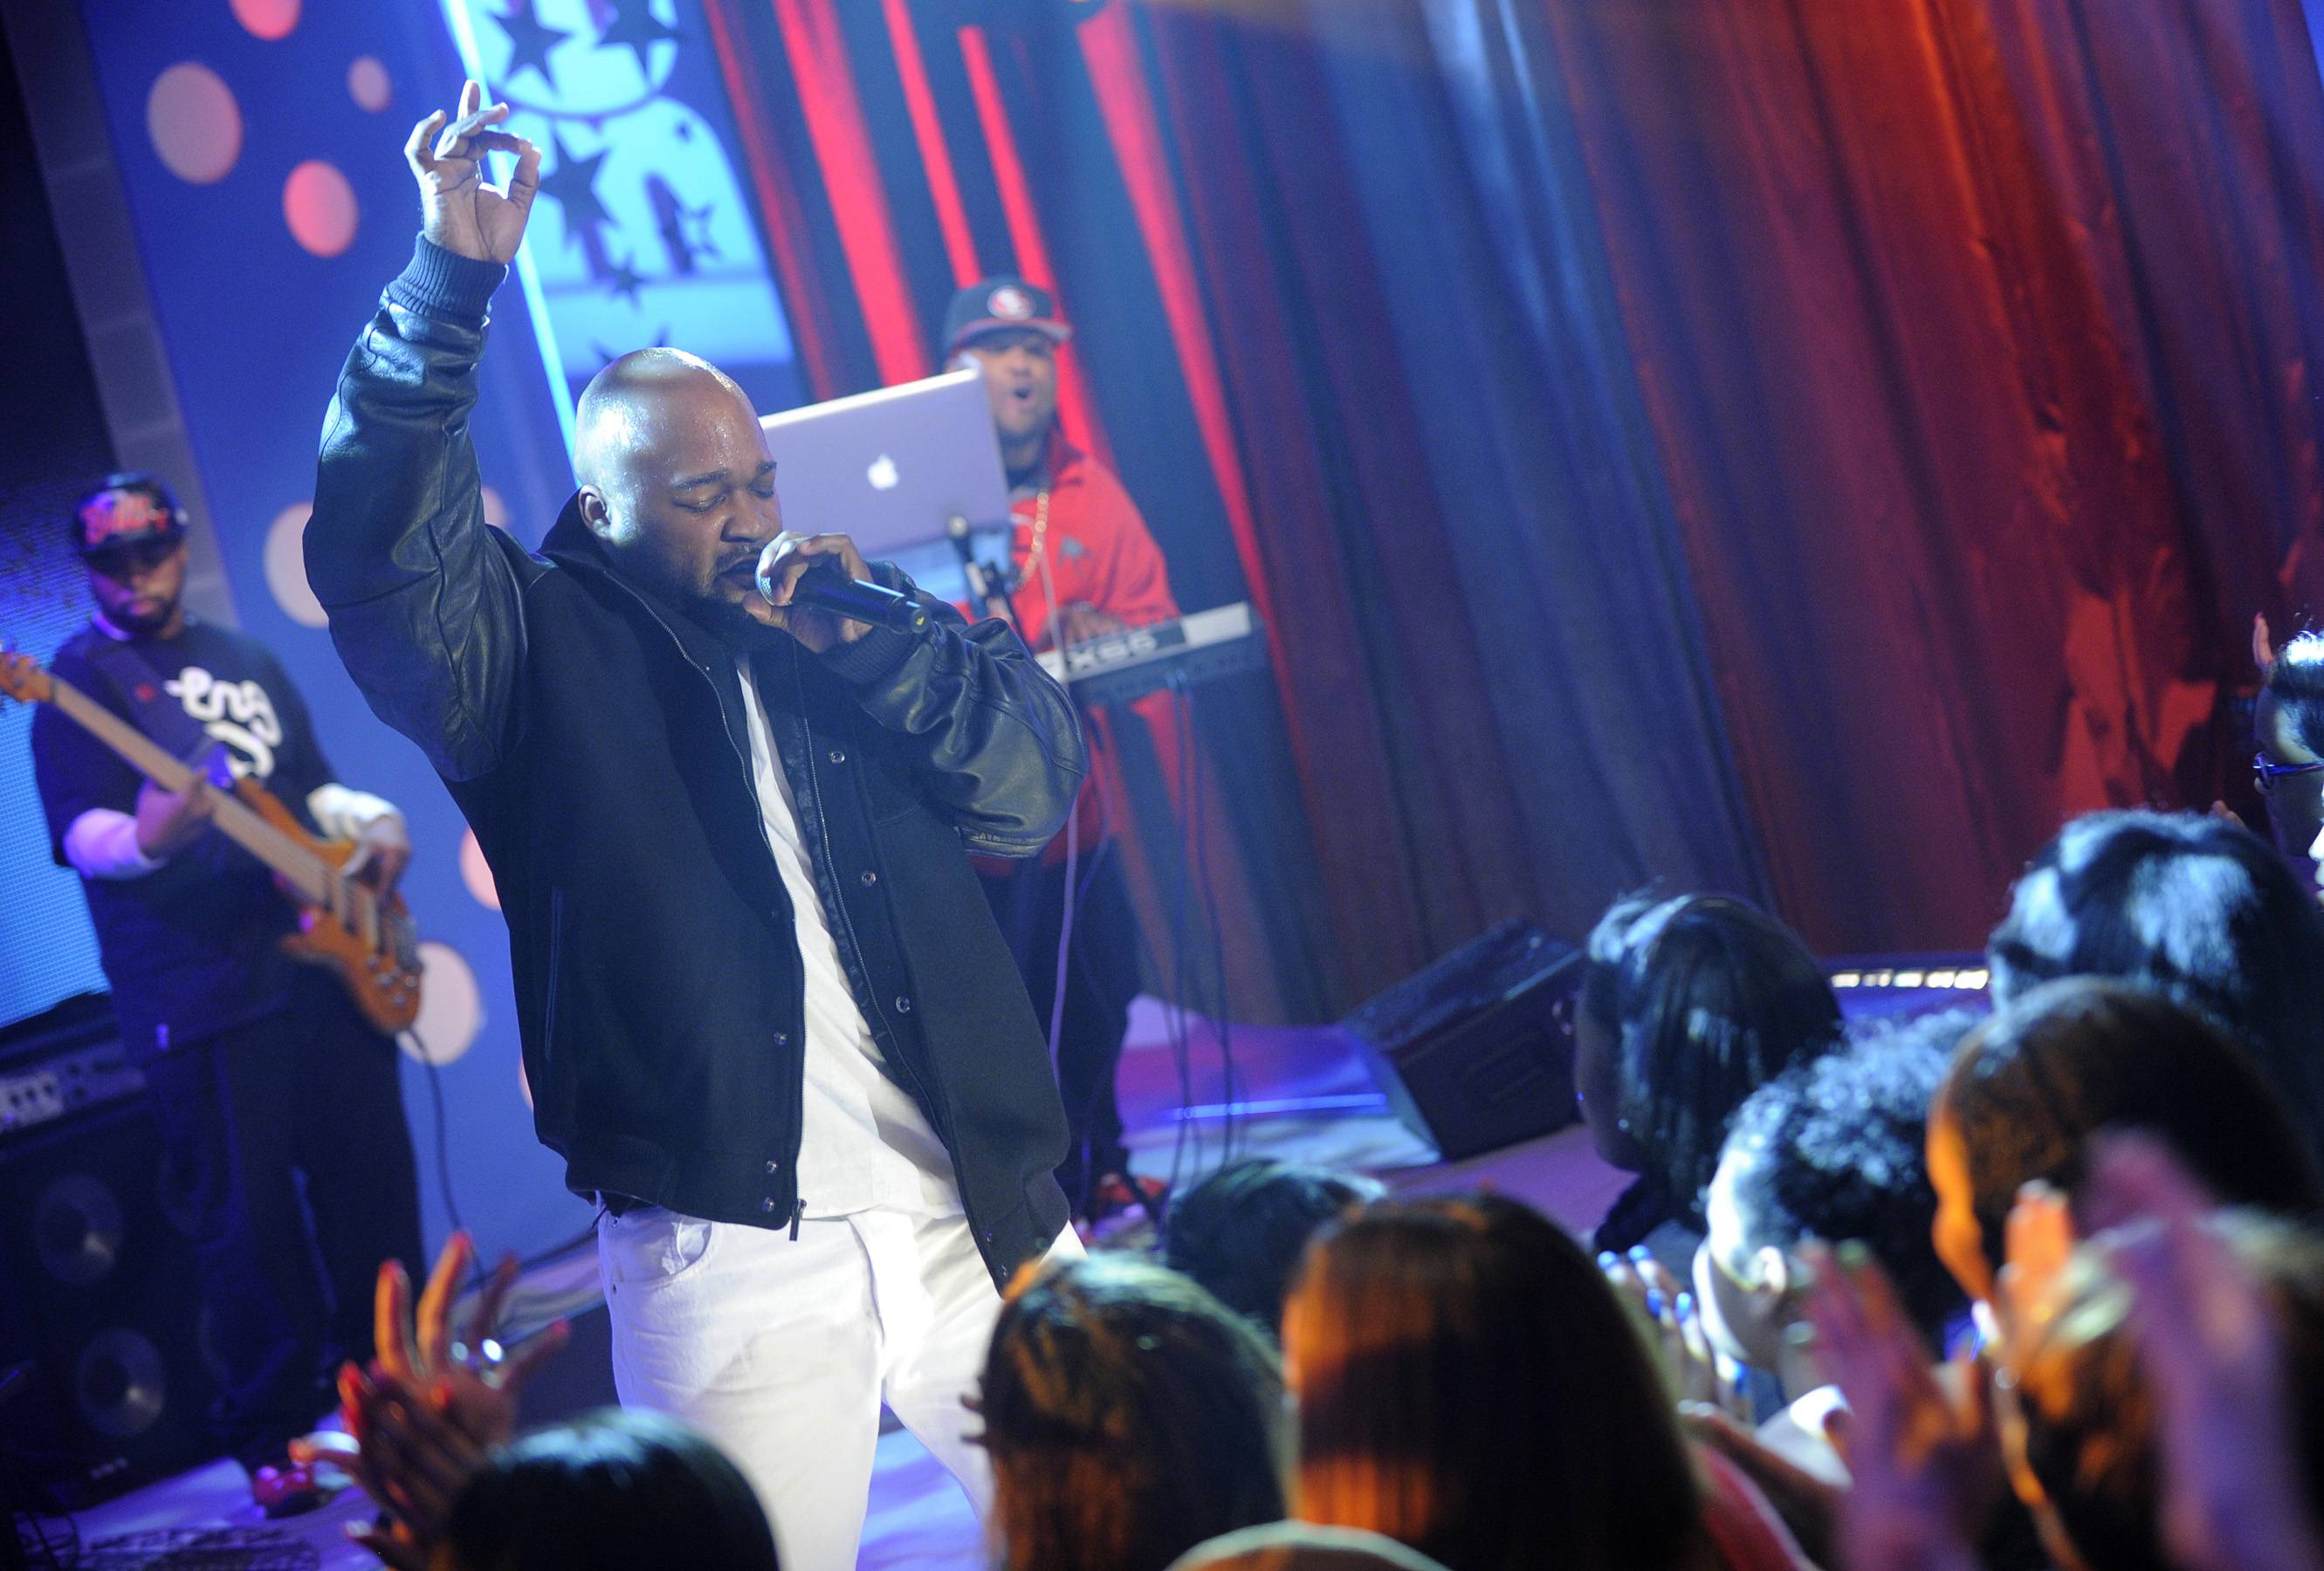 Jus K Going for the Crown - Wild Out Wednesday competitor Jus K at 106 & Park, May 2, 2012. (Photo: John Ricard/BET)